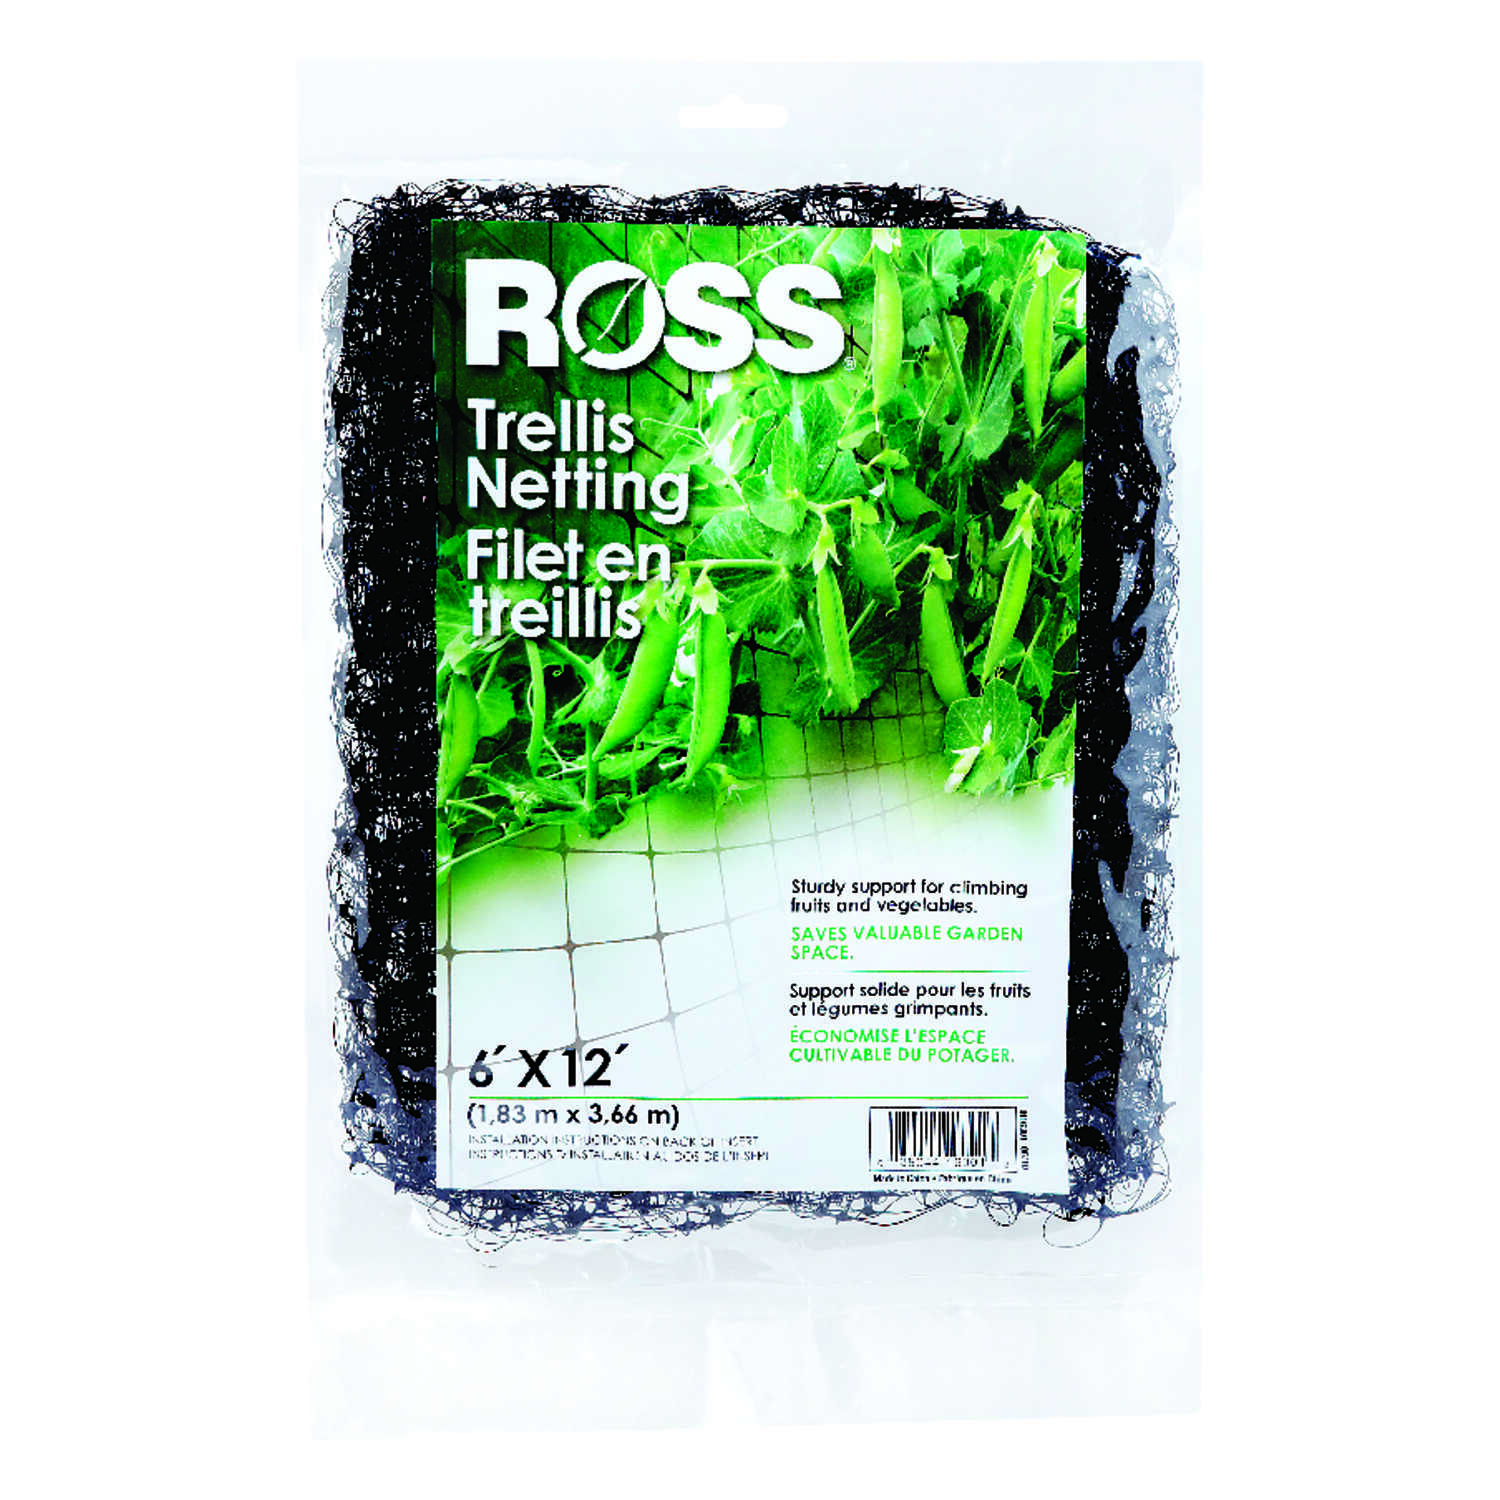 Ross  Trellis Netting  1 pk